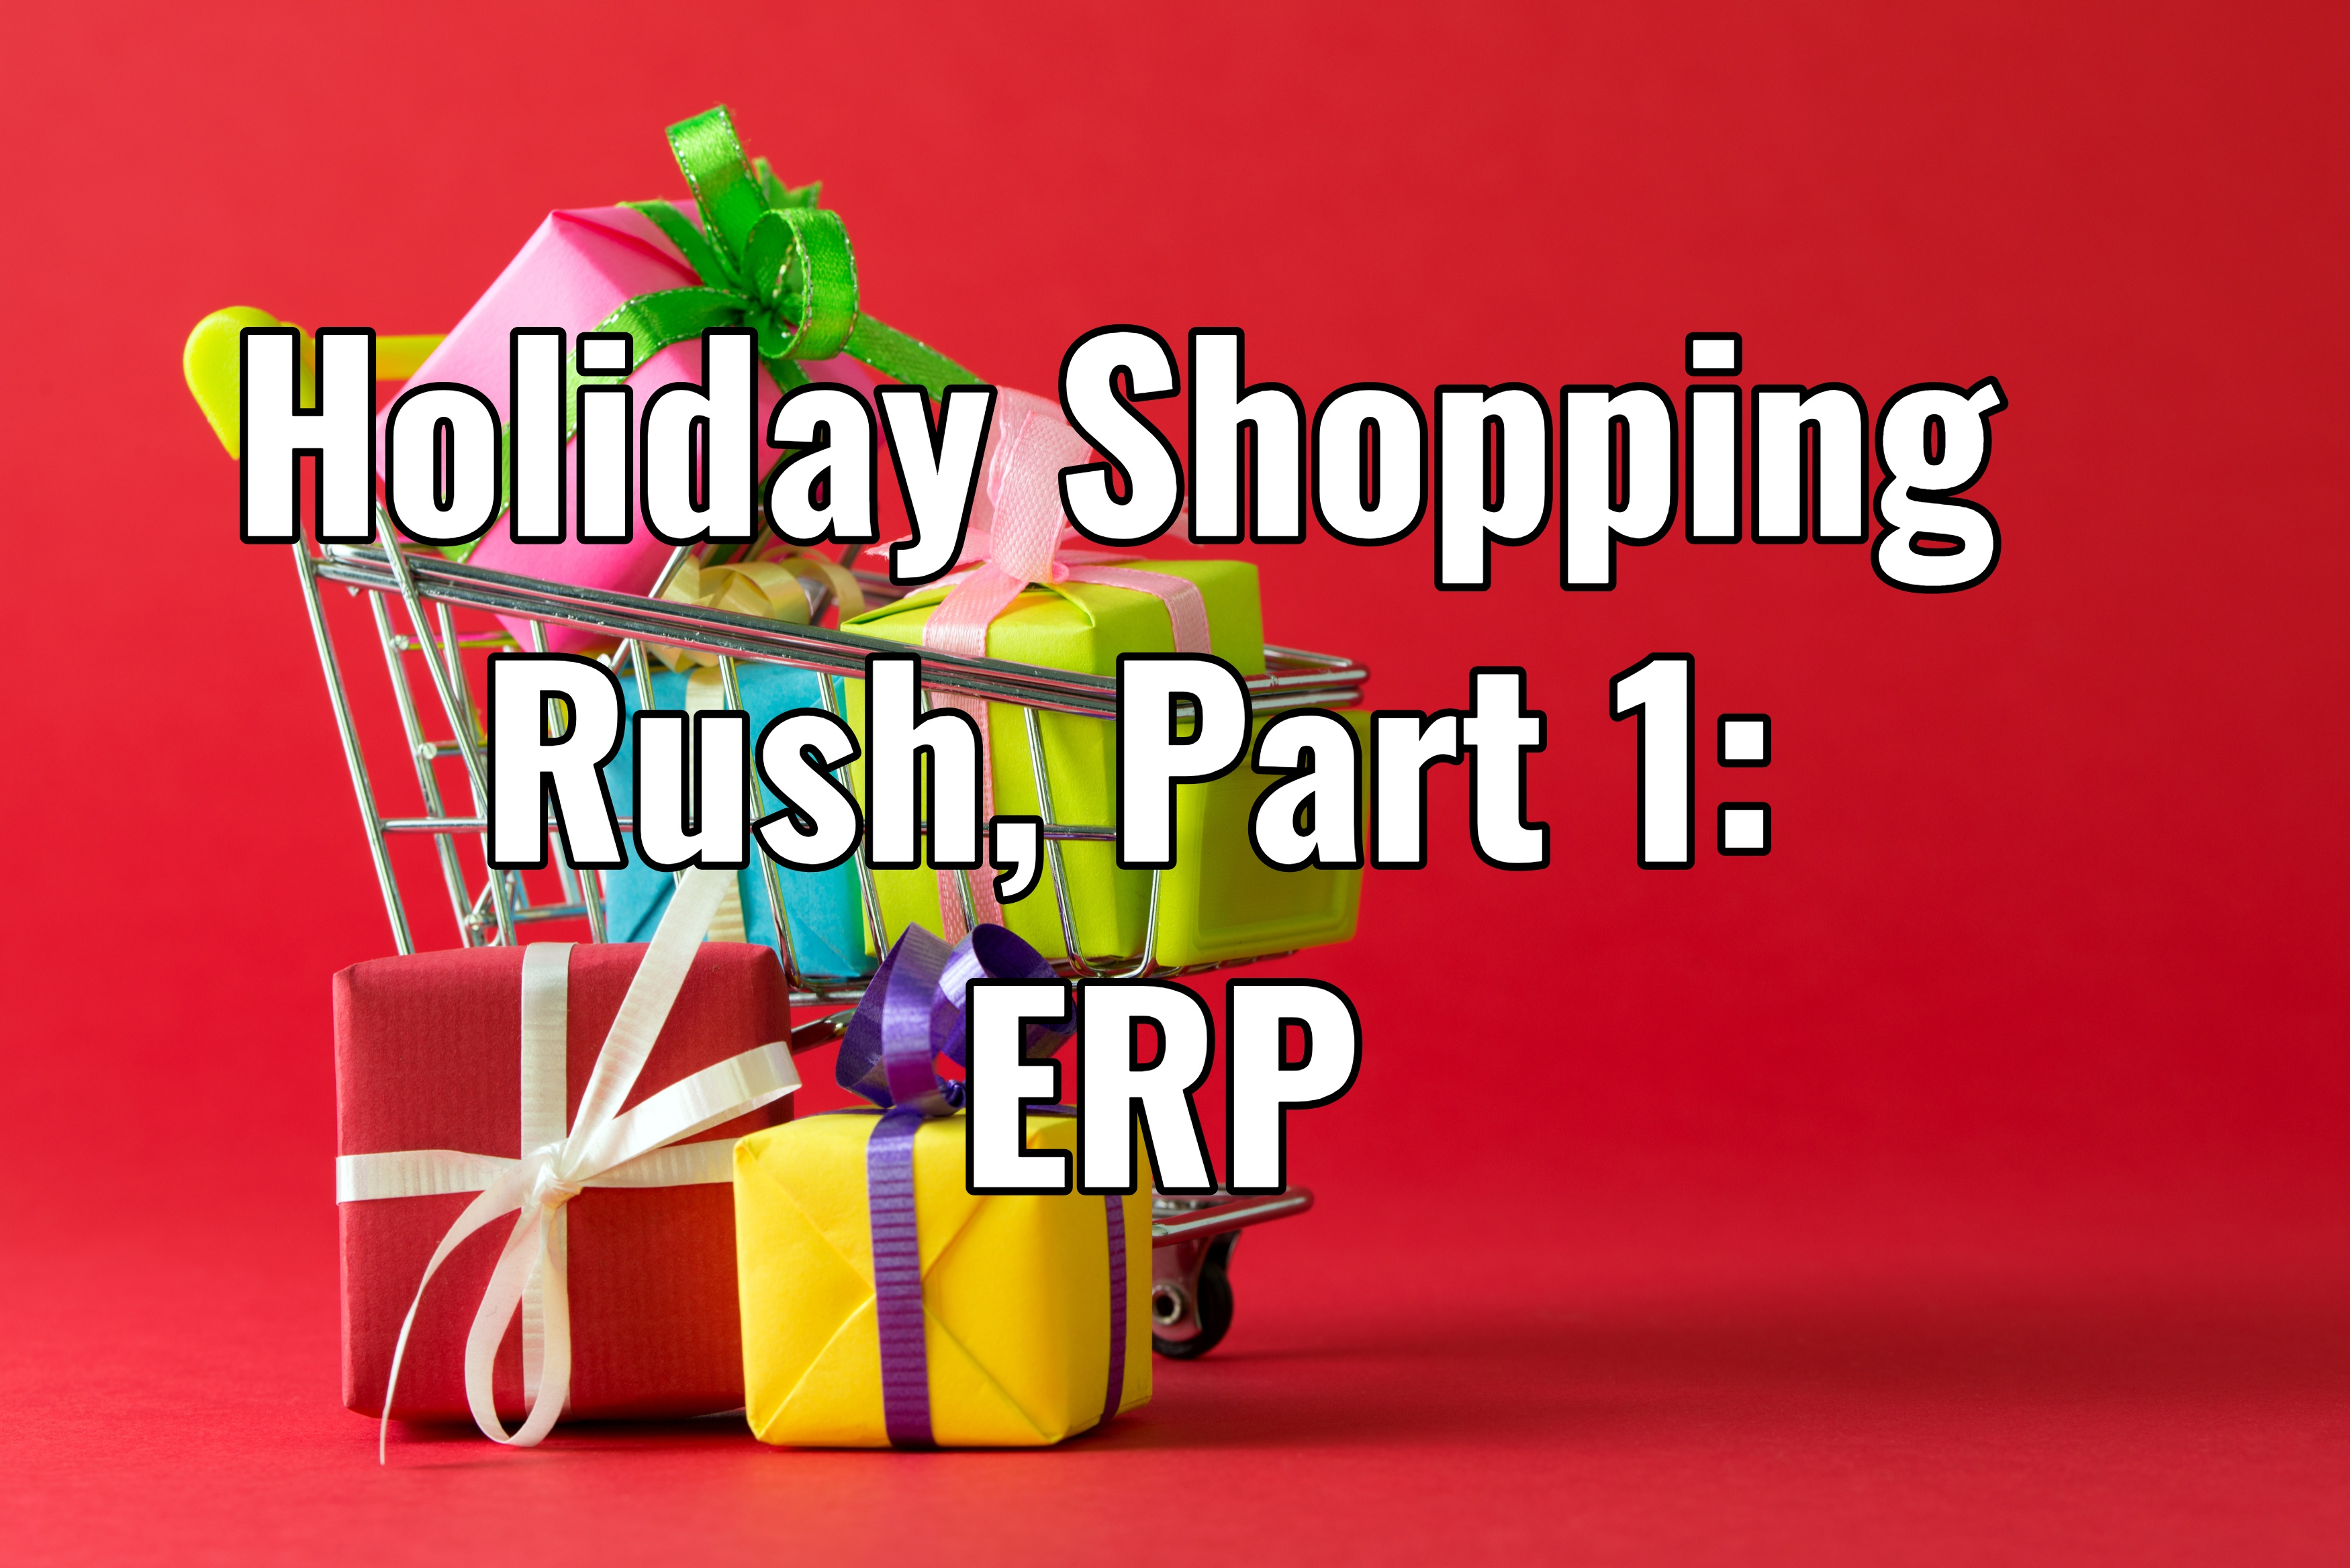 Holiday Shopping Rush, Part 1: ERP